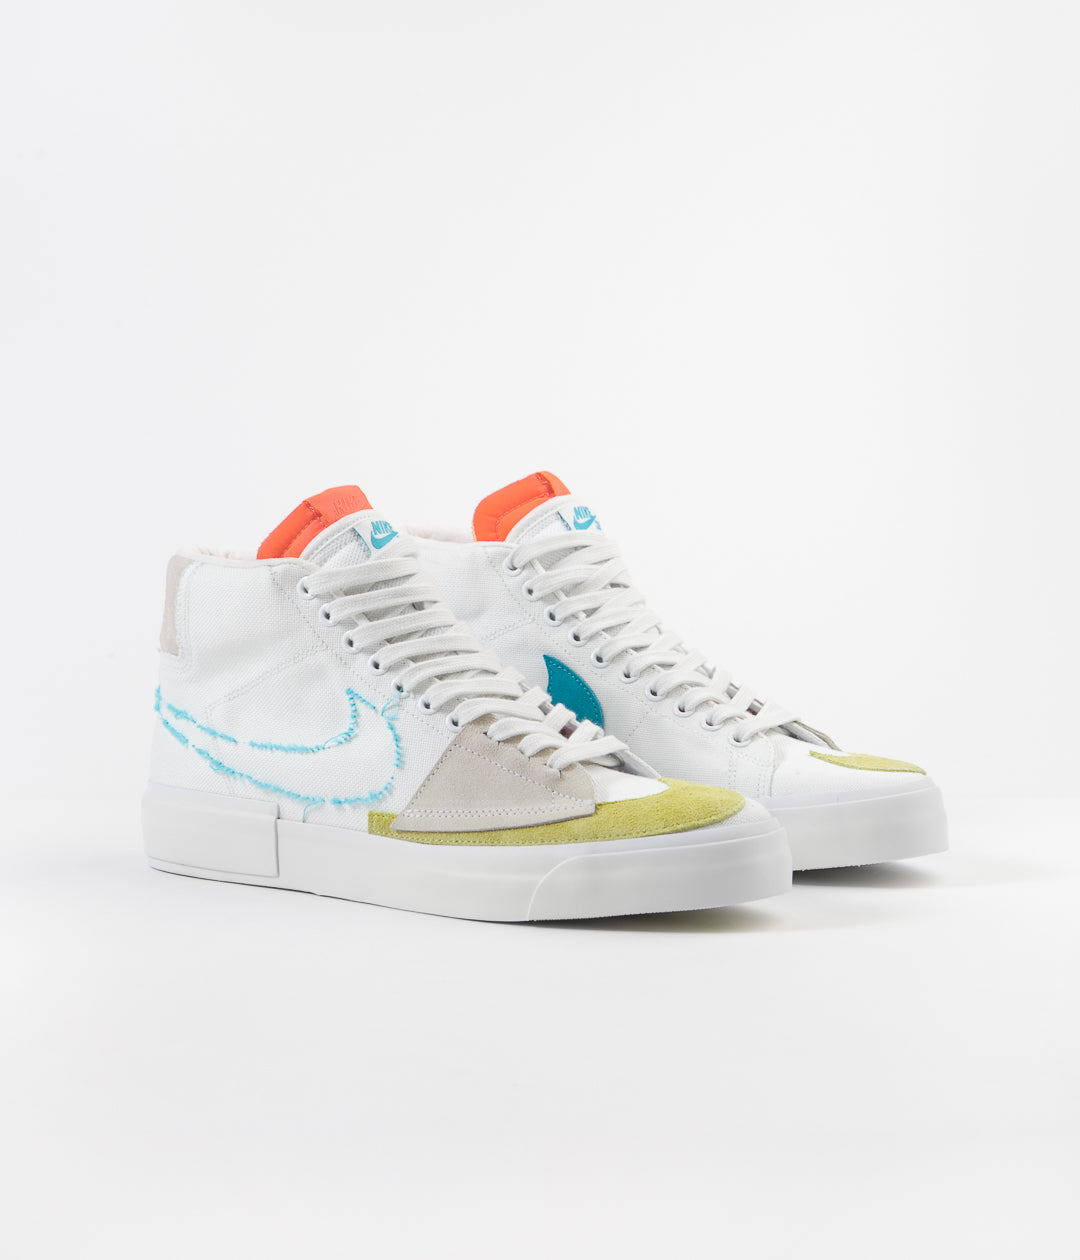 Nike SB Blazer Mid Edge Shoes - Summit White / Oracle Aqua - Summit White